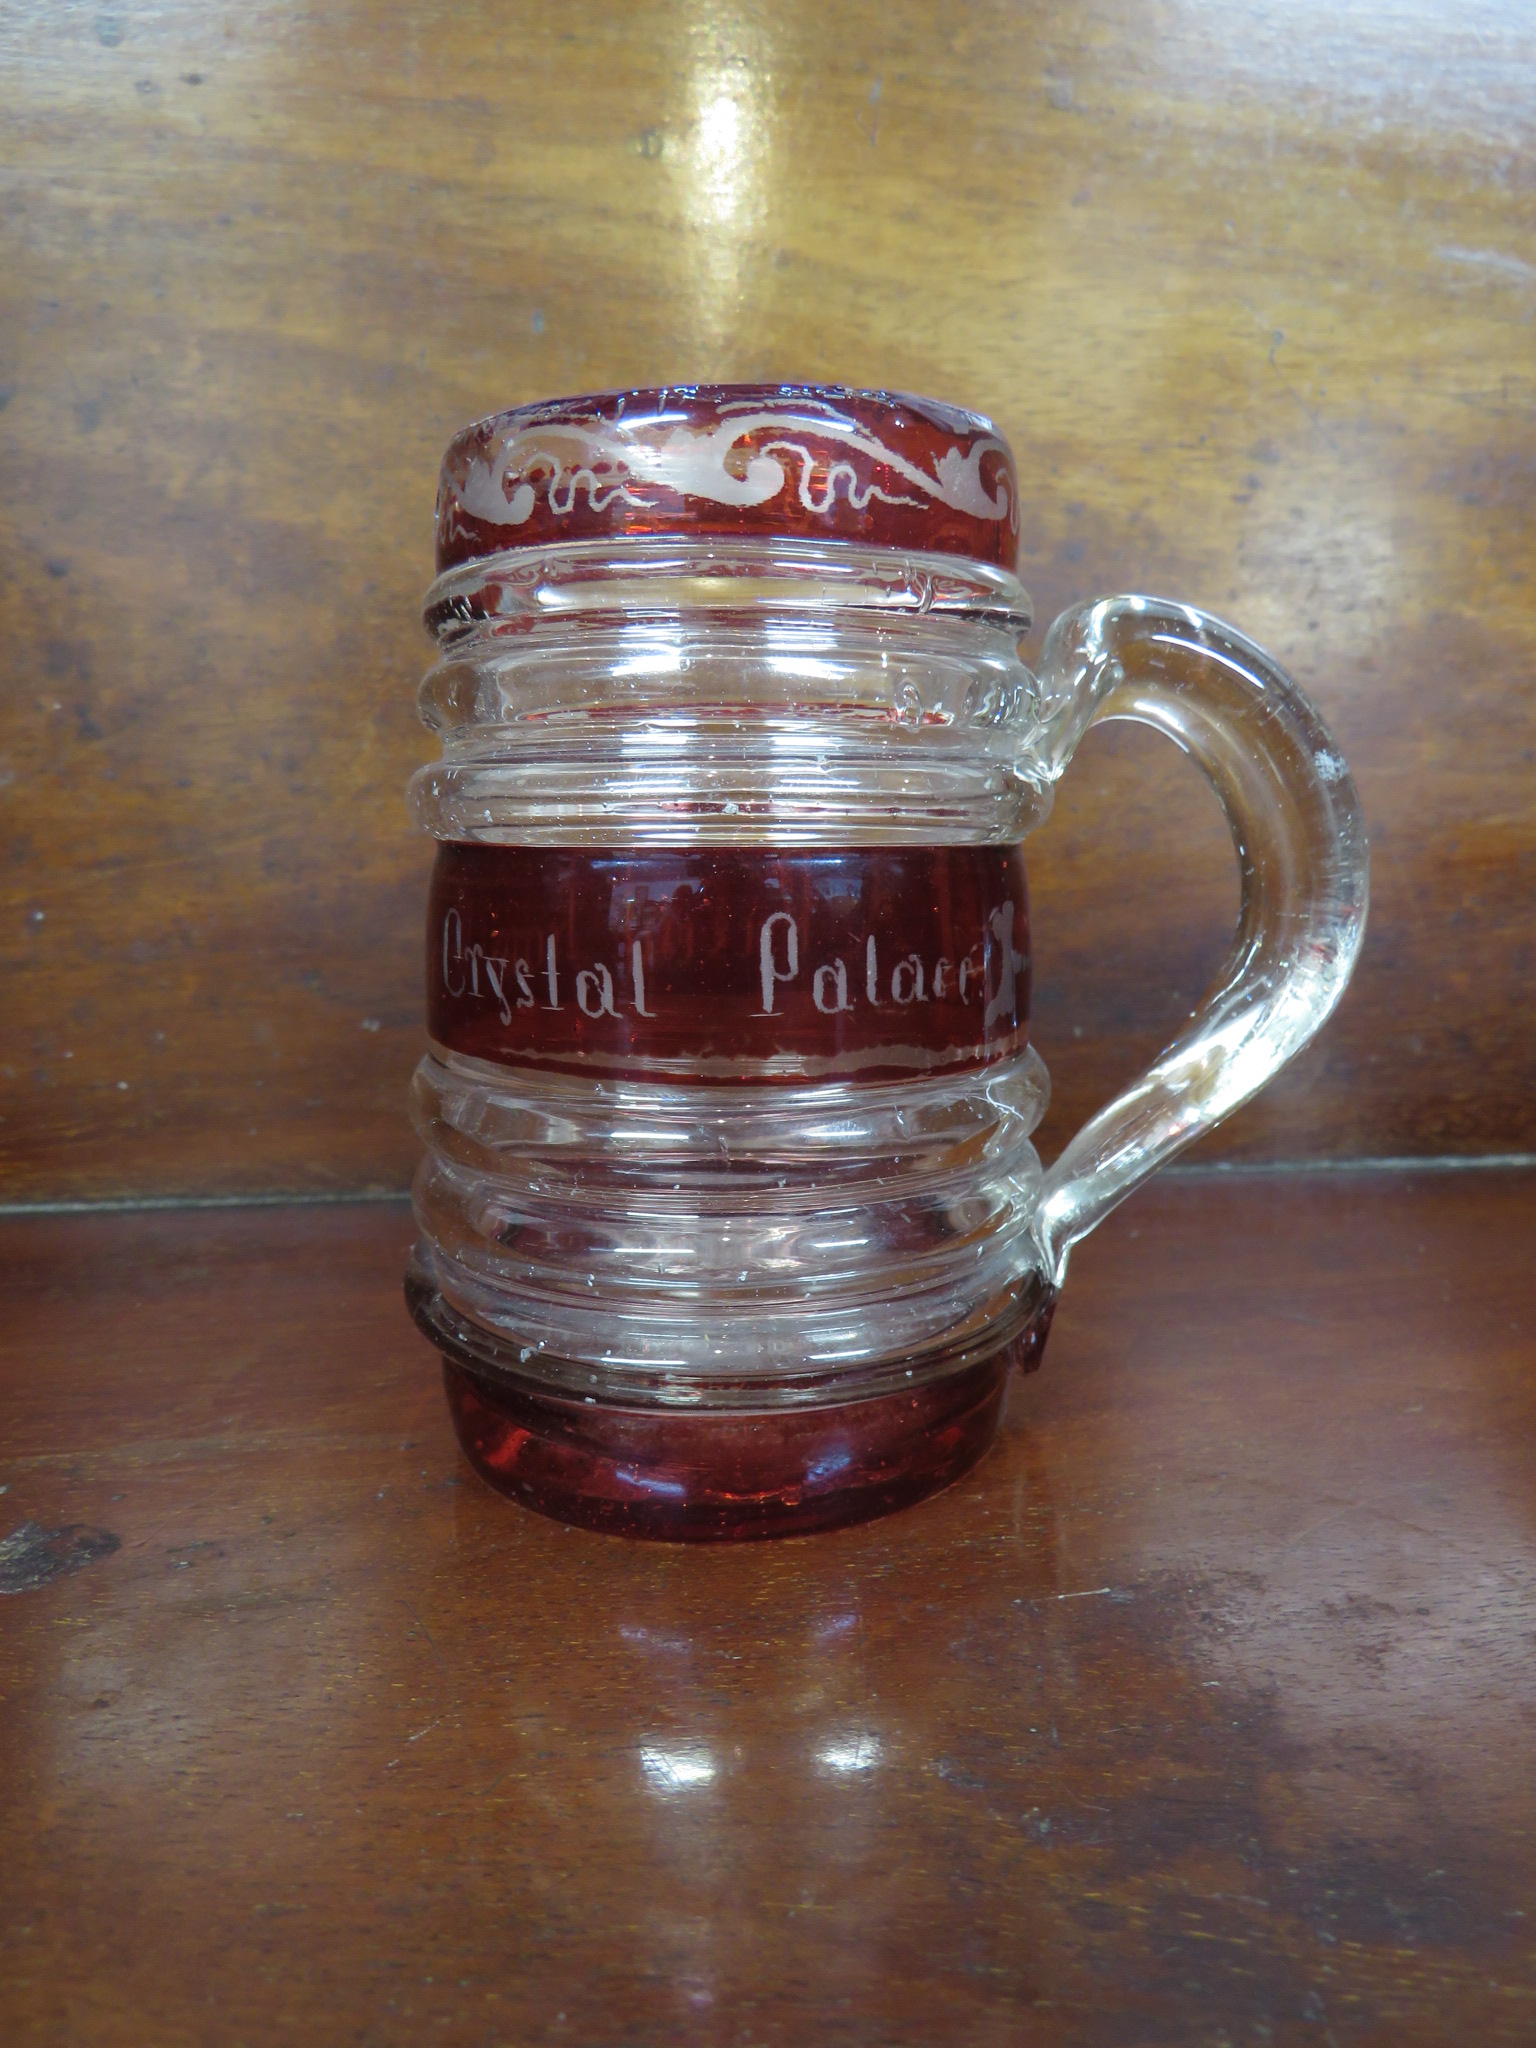 Lot 122 - Hand blown glass tankard with inscription 'A Present from Crystal Palace', height 10.5cm